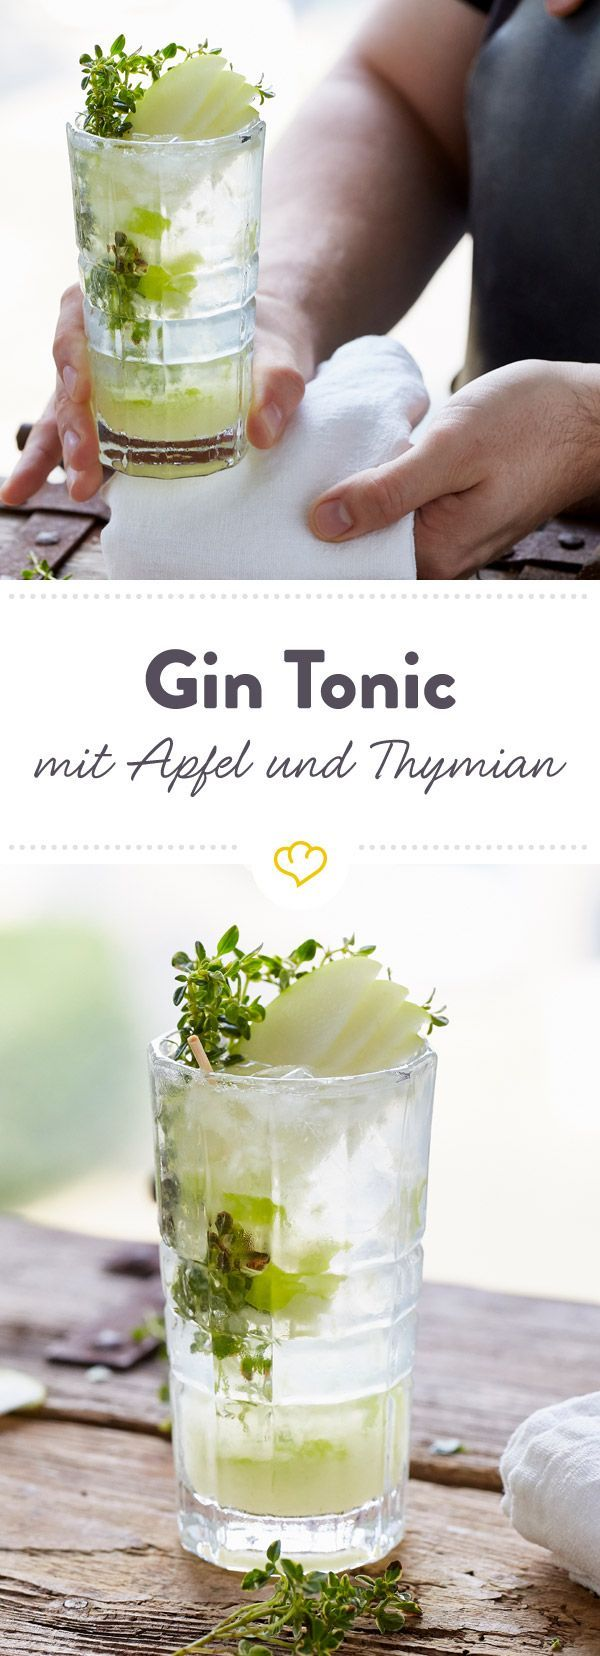 gin tonic mit pfeln und thymian rezept it 39 s cocktail time so wird 39 s warm ums herz. Black Bedroom Furniture Sets. Home Design Ideas